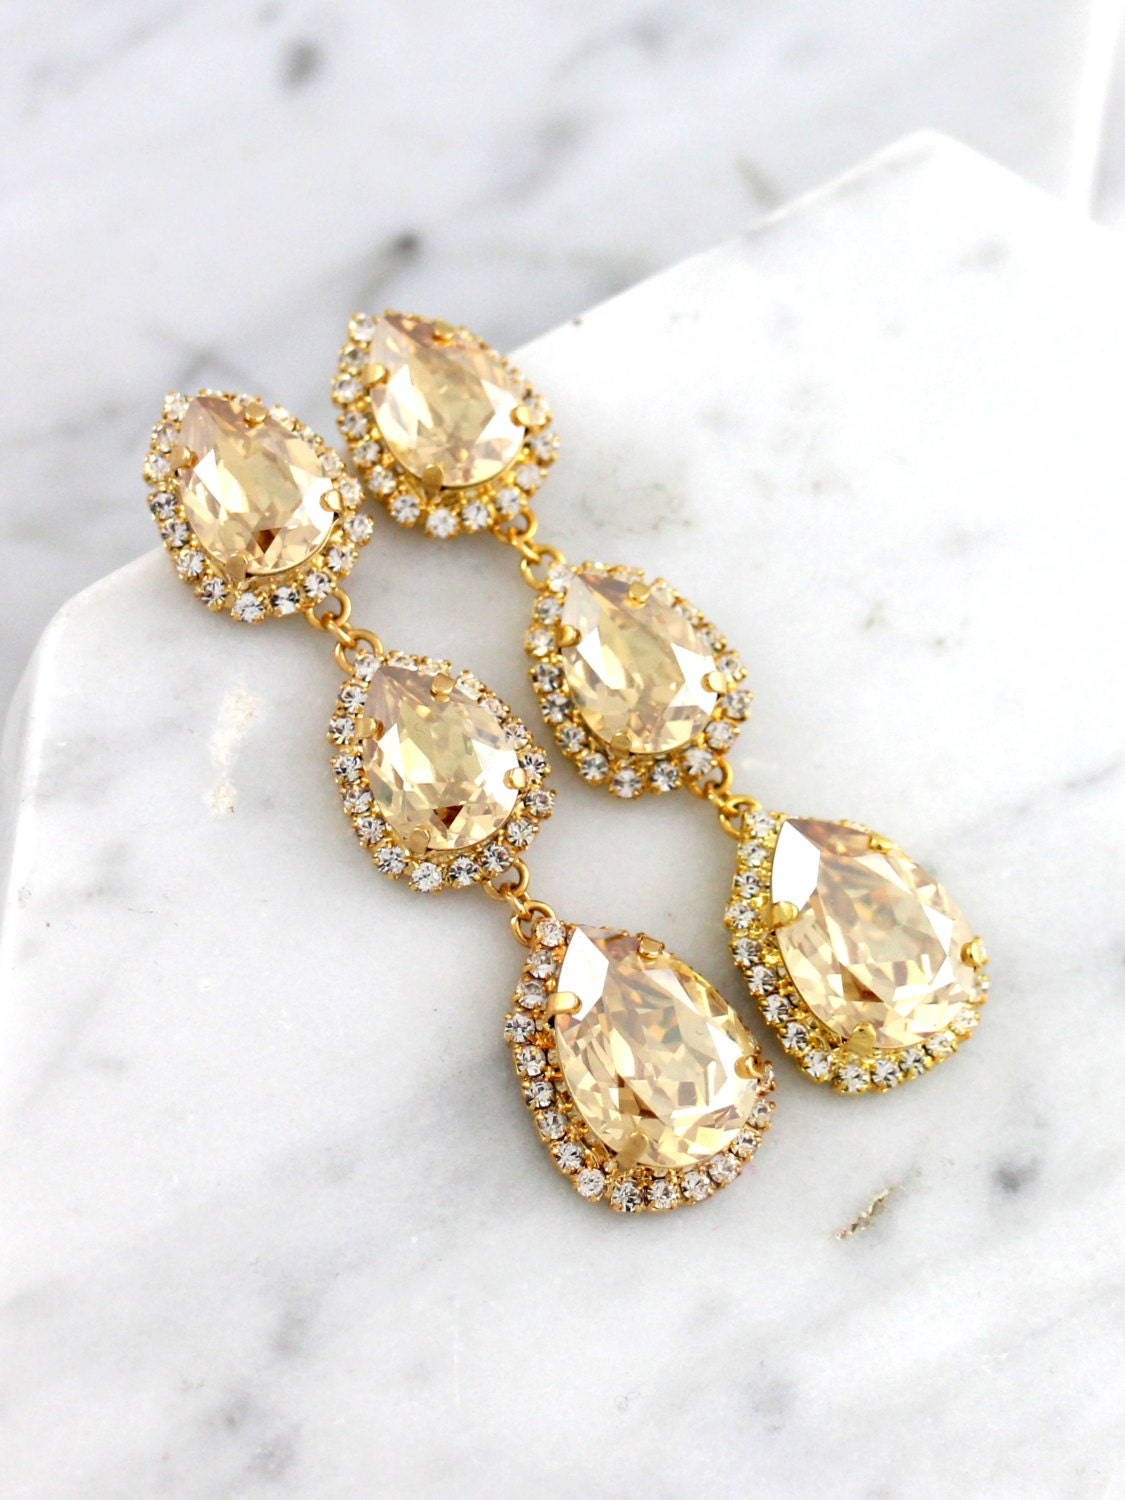 Champagne earrings champagne bridal chandelier earrings for Jewelry for champagne wedding dress